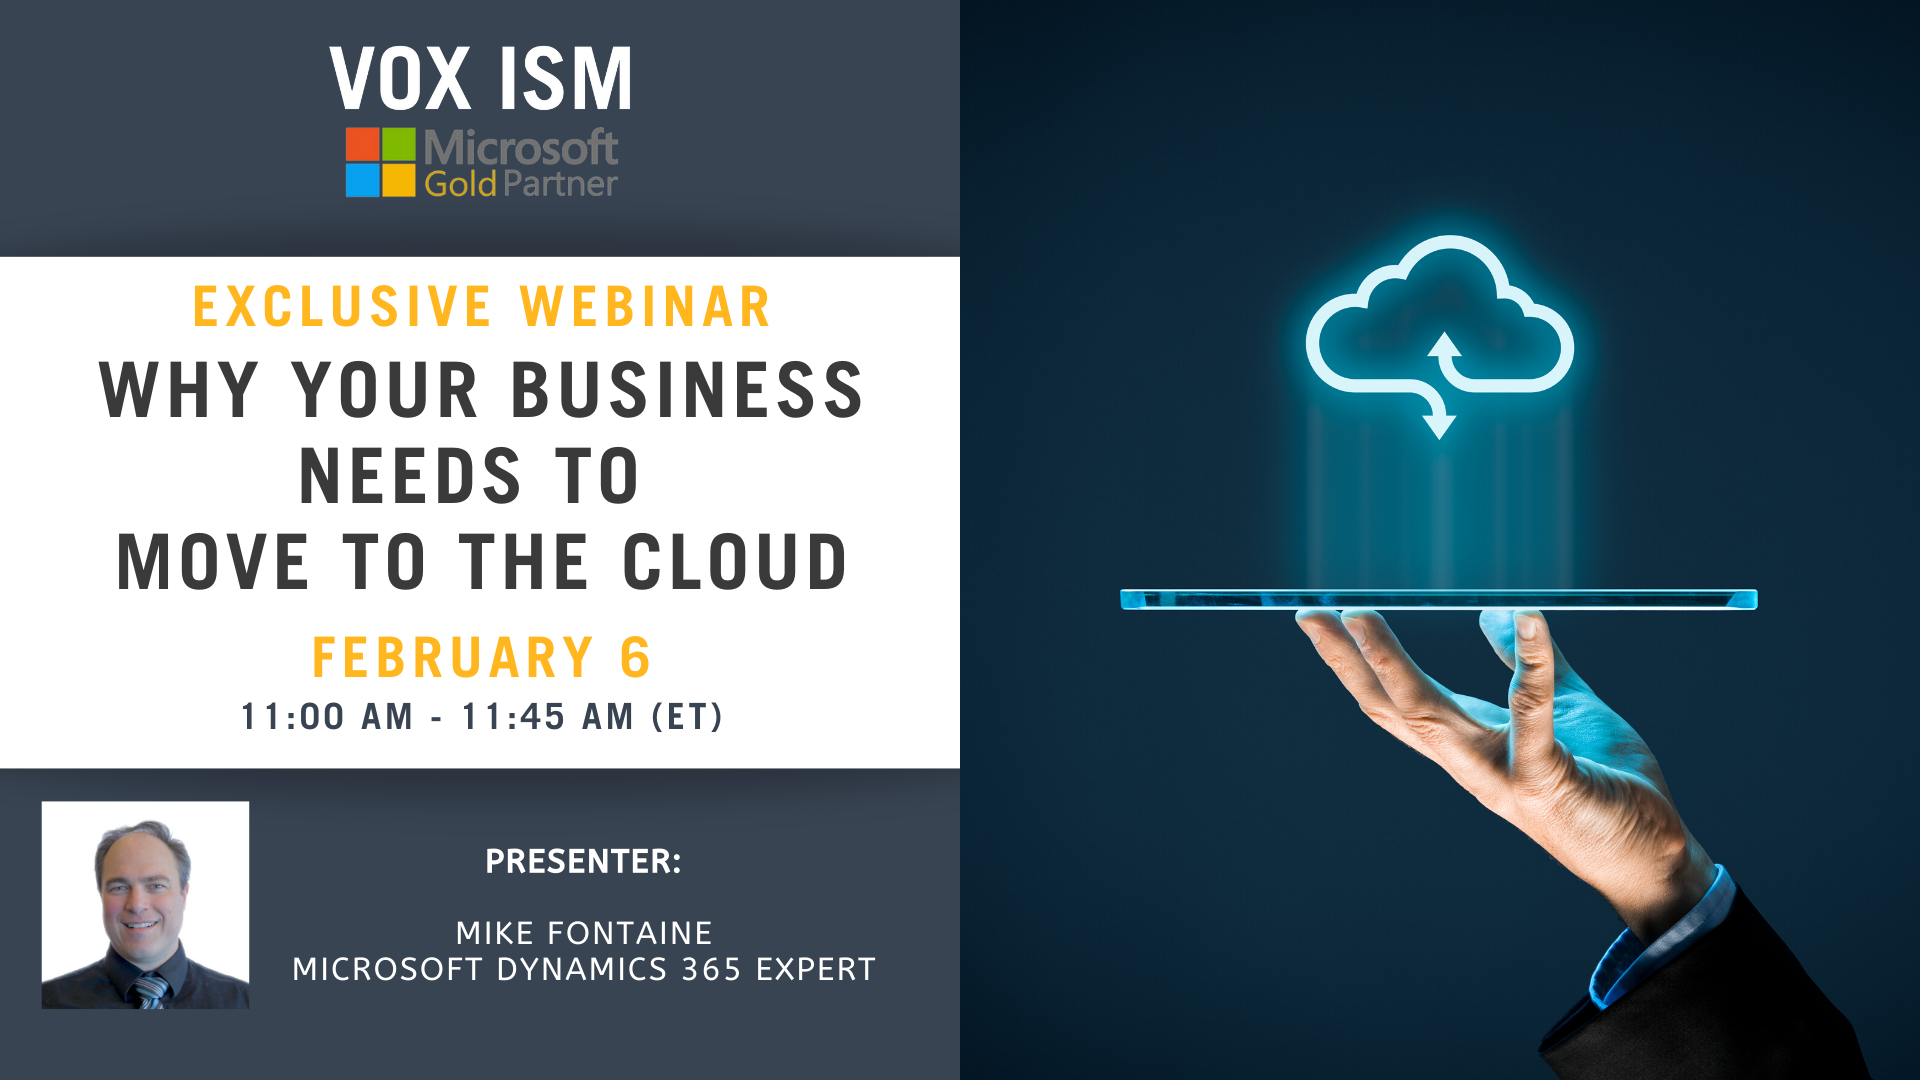 Why your business needs to move to the cloud_VOX ISM